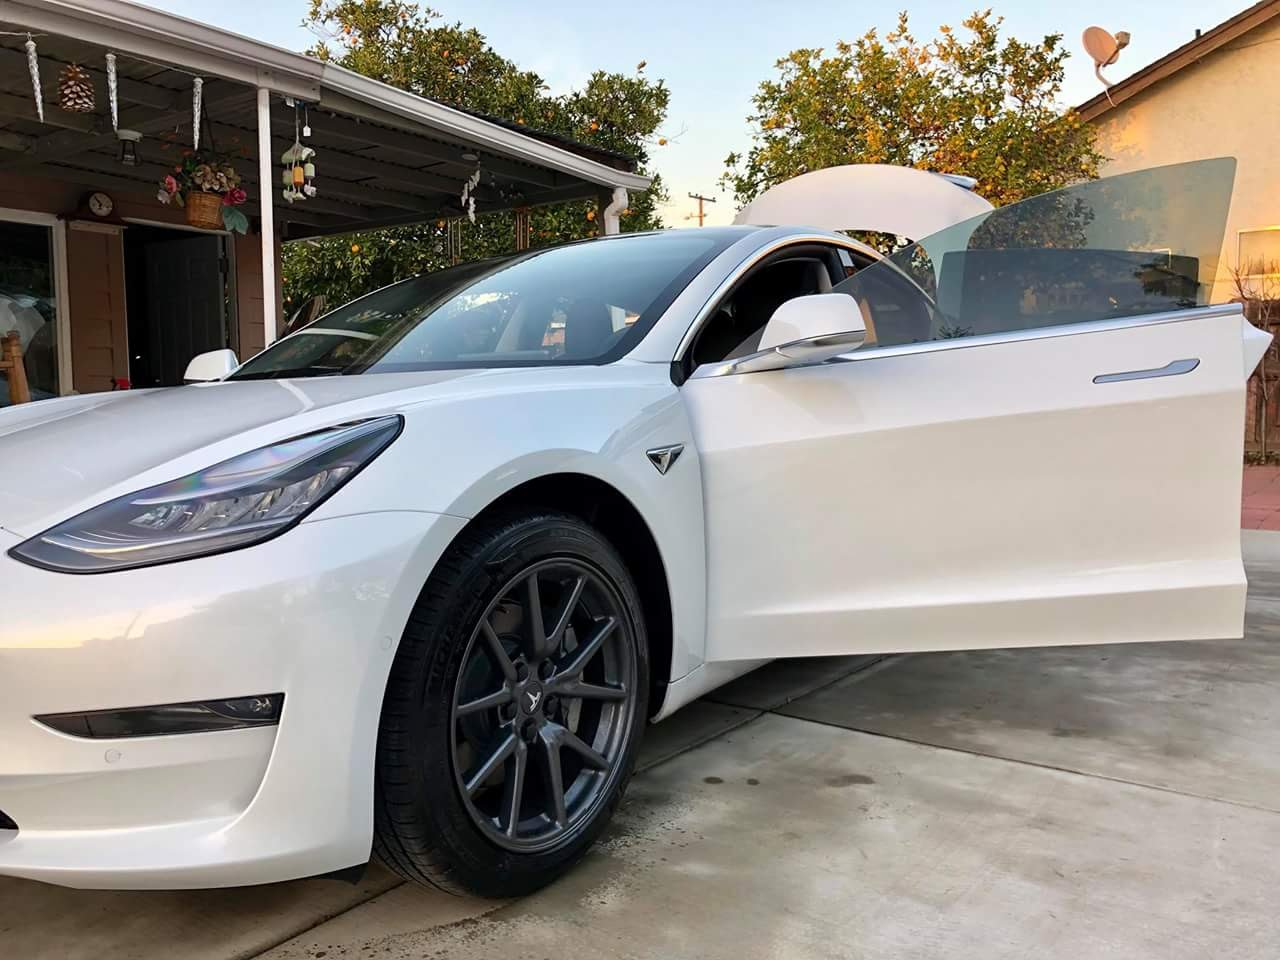 Pictures of Model 3s with 18